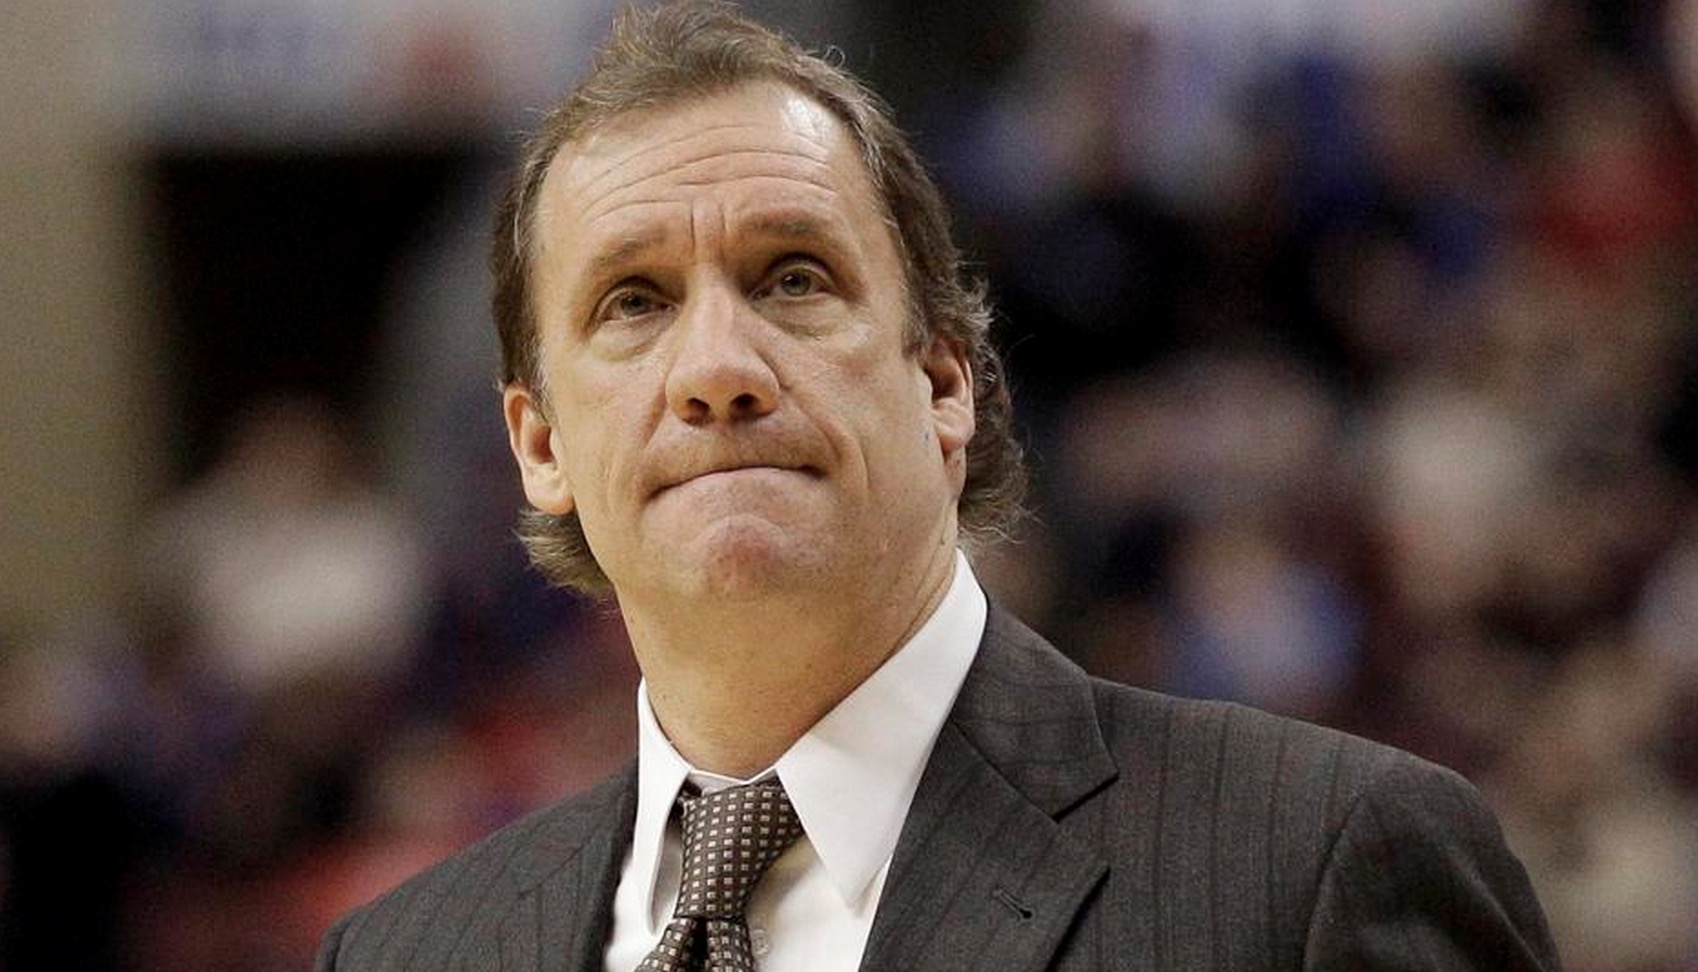 T Wolves Coach Flip Saunders Dies Of Cancer At 60 Years